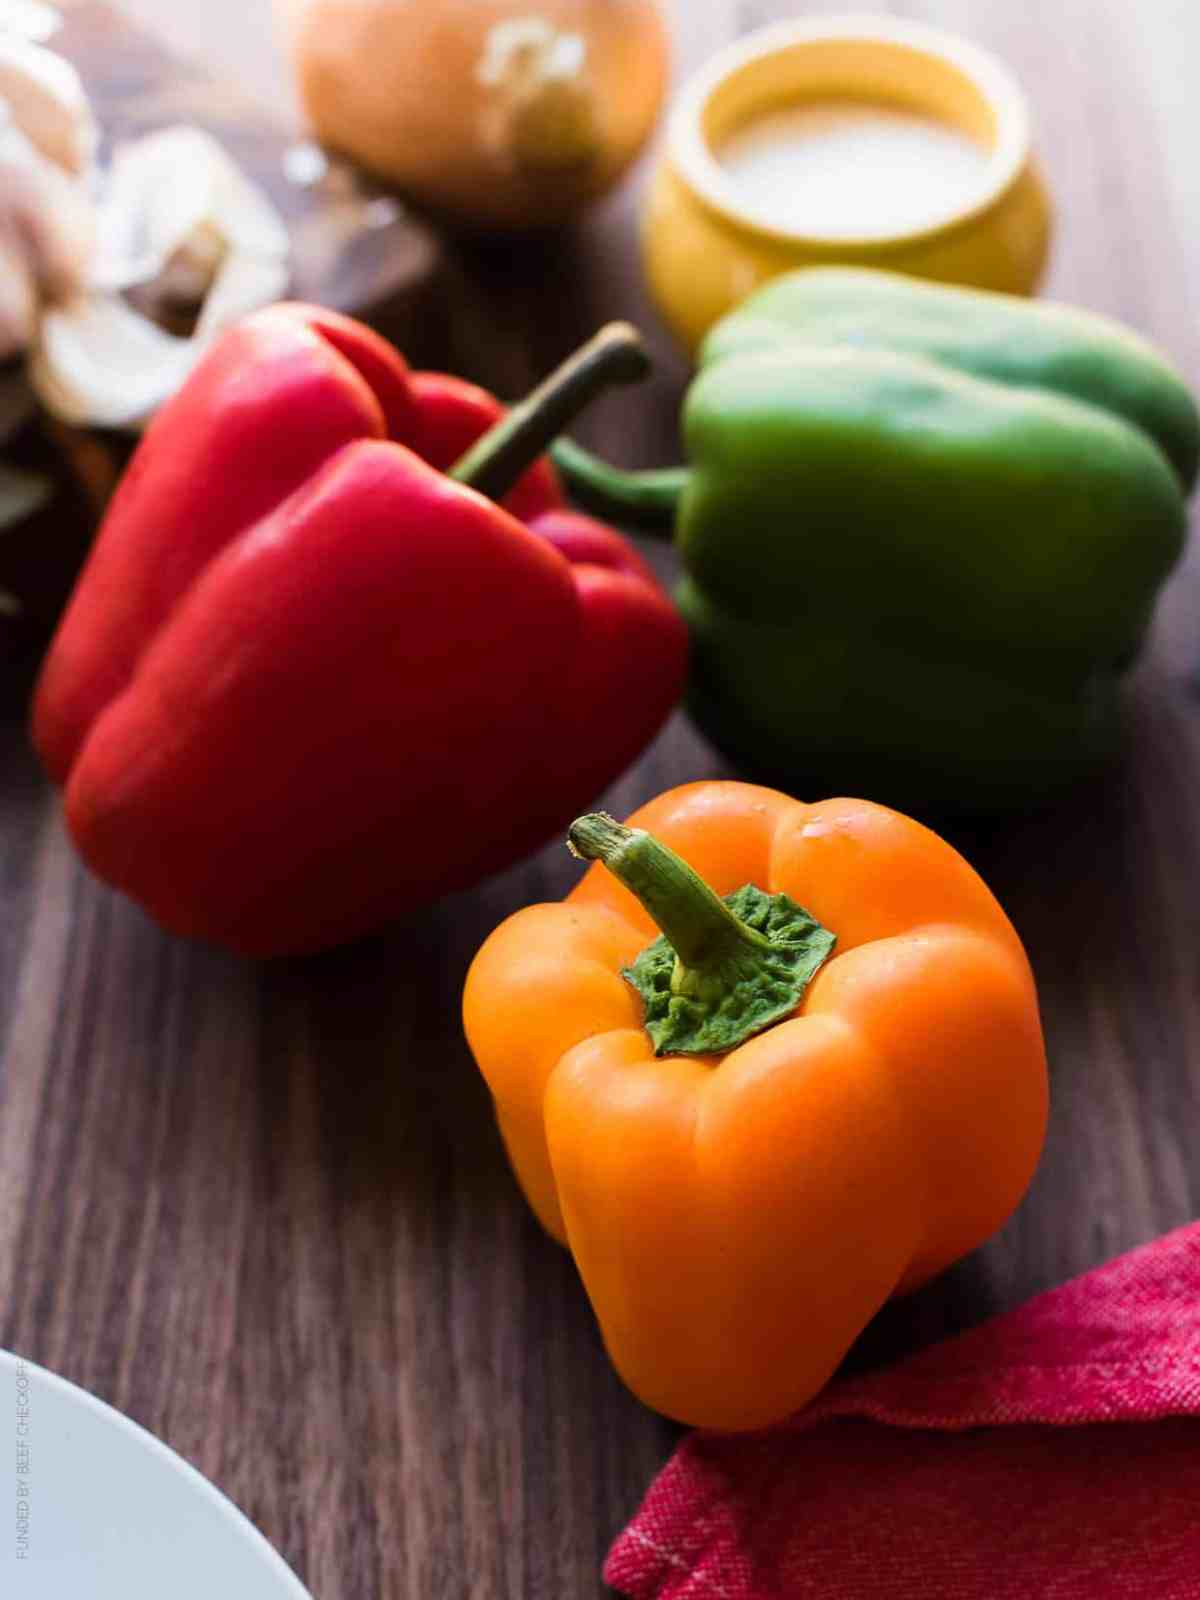 Orange, red, and green bell peppers on a wooden surface.